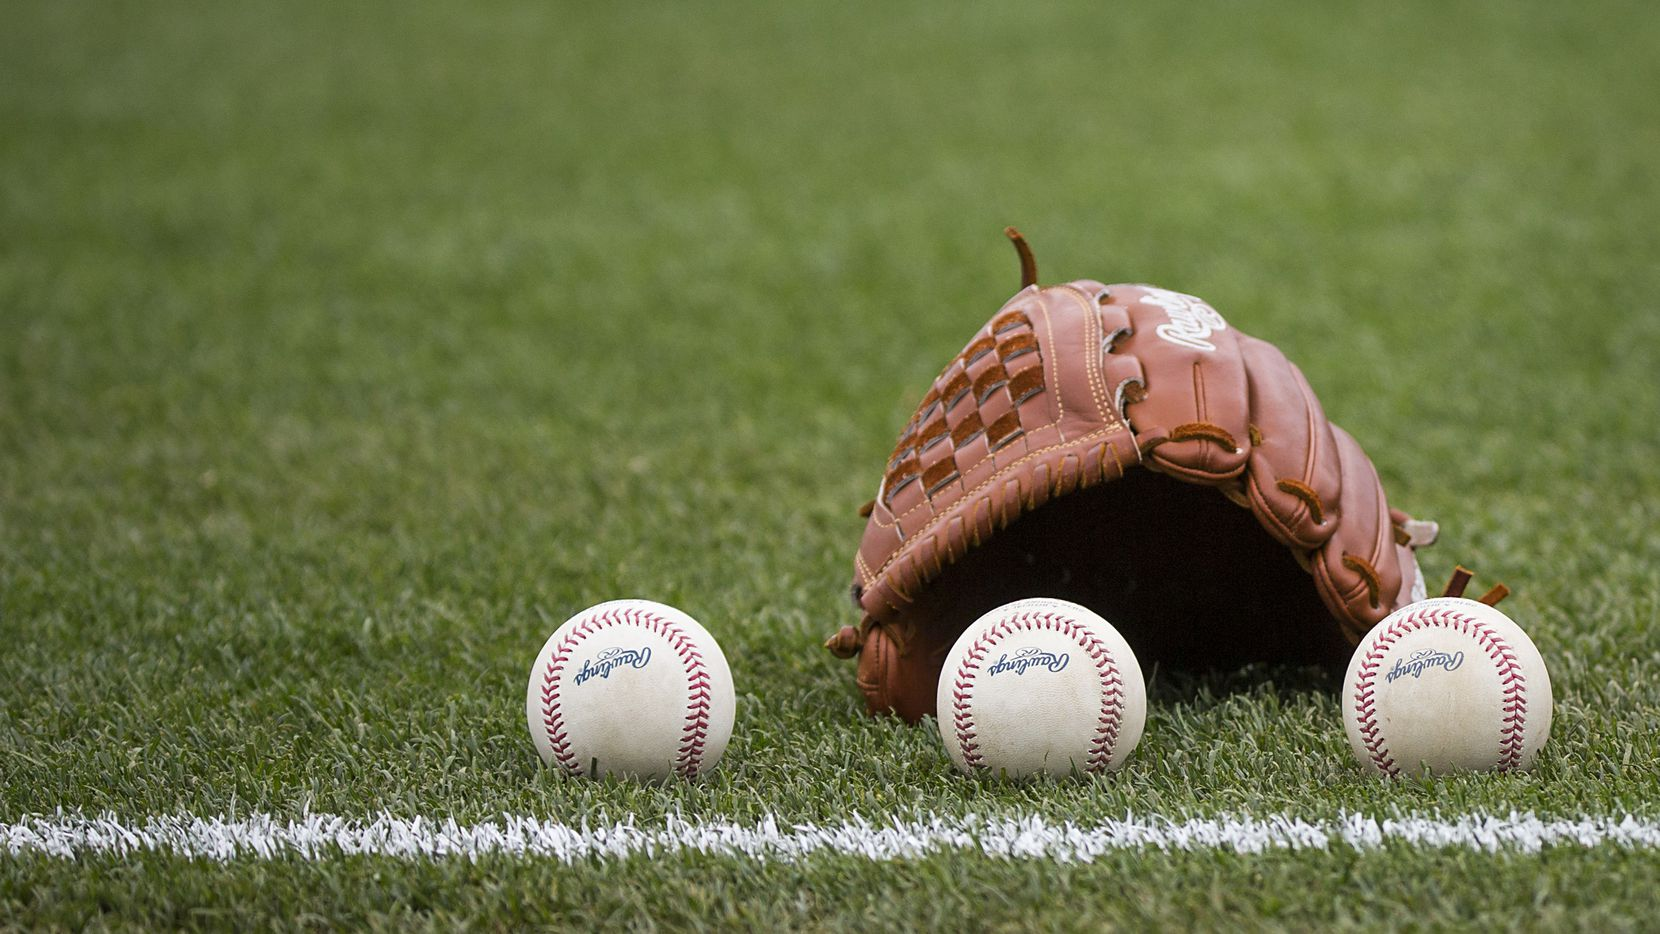 Balls rest next to the glove of Texas Rangers pitcher Nick Tepesch as he warms up before a spring training game against the Seattle Mariners at Surprise Stadium on Sunday, March 6, 2016, in Surprise, Ariz. (Smiley N. Pool/The Dallas Morning News)